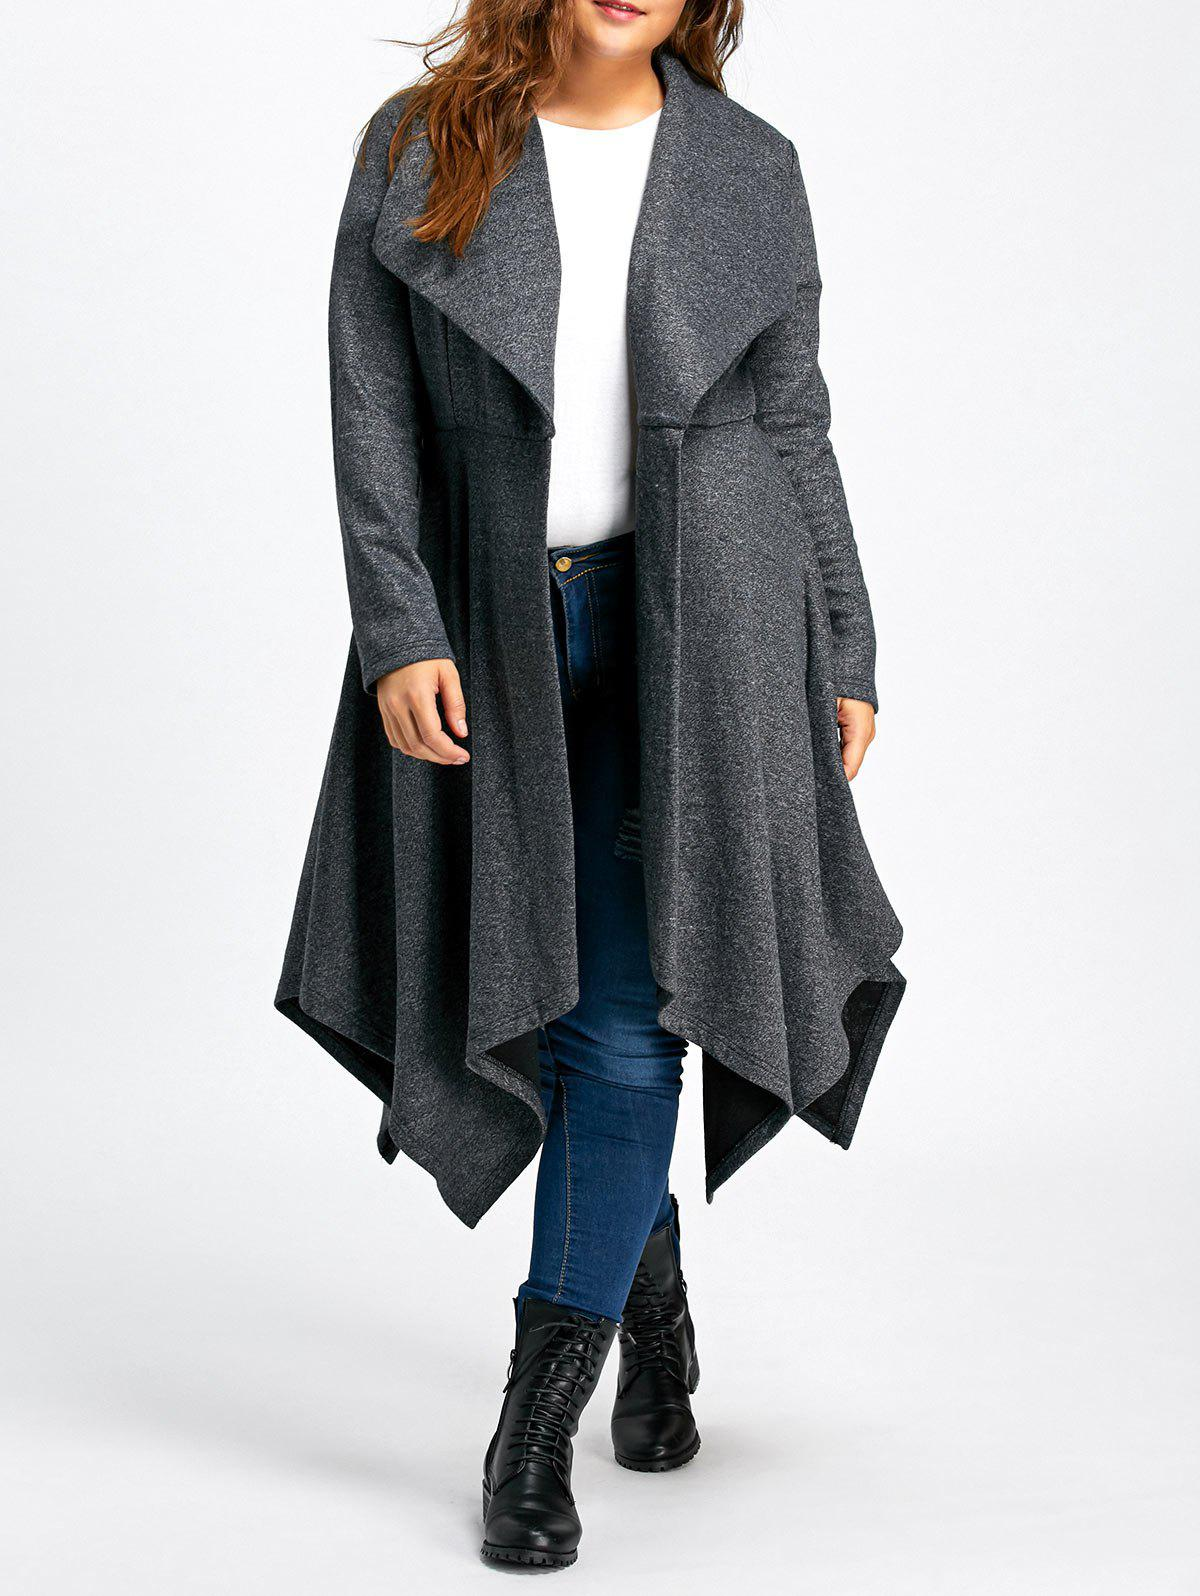 Long Handkerchief Plus Size Wool CoatWOMEN<br><br>Size: 5XL; Color: GRAY; Clothes Type: Wool &amp; Blends; Material: Polyester; Type: Asymmetric Length; Shirt Length: Long; Sleeve Length: Full; Collar: Turn-down Collar; Pattern Type: Solid; Style: Fashion; Season: Fall,Spring; Weight: 1.2500kg; Package Contents: 1 x Coat;